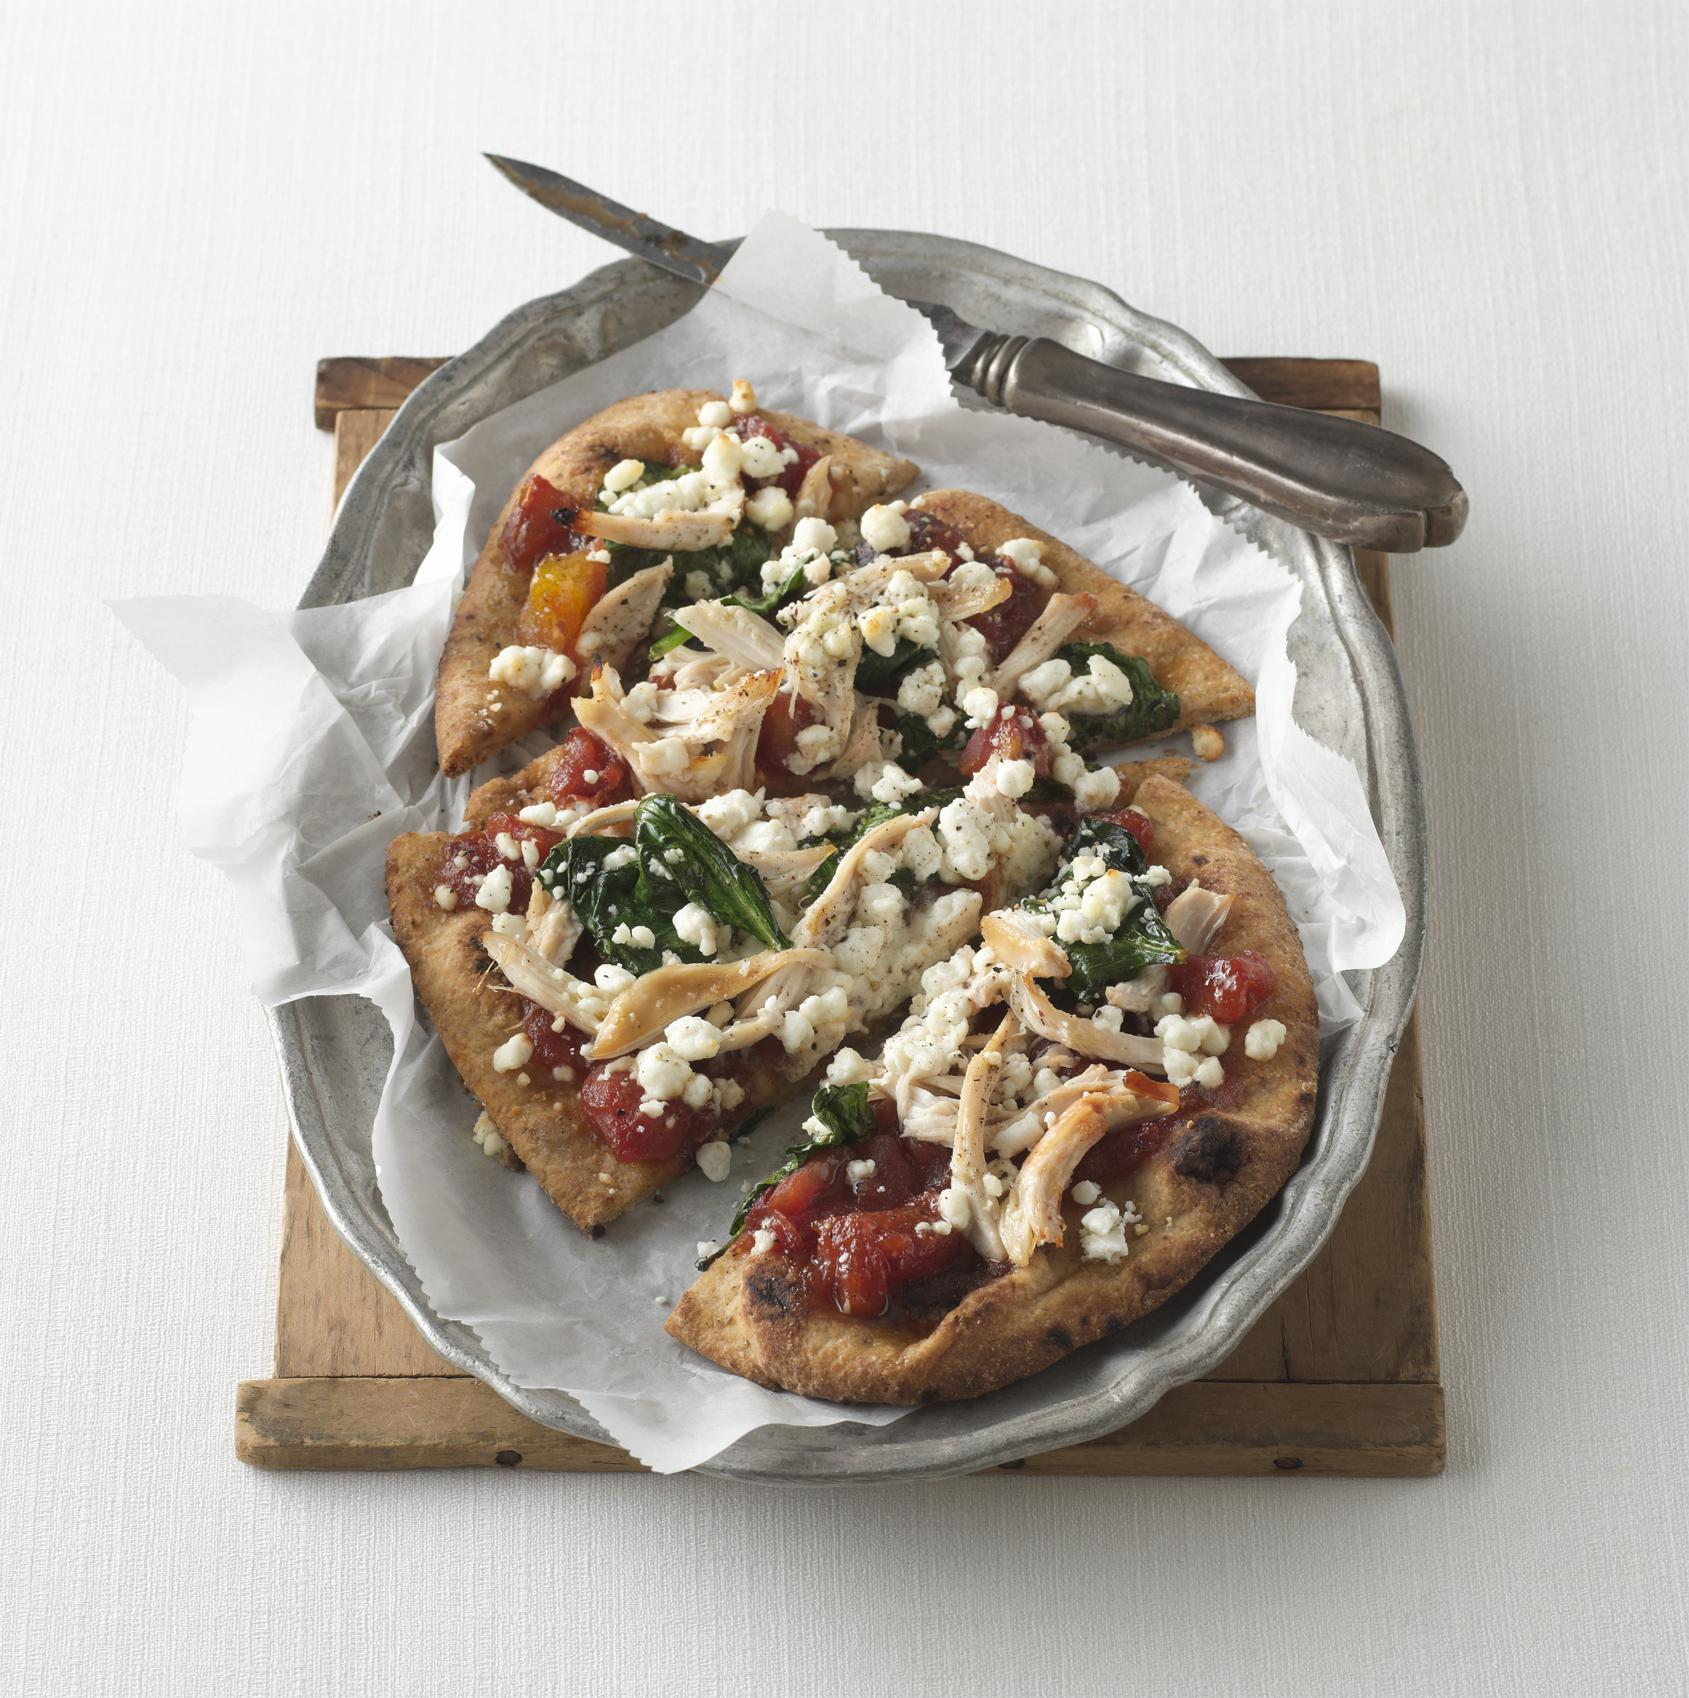 Rotisserie Chicken Naan Pizza with Spinach, Queso Fresco, & Fire-Roasted Tomato-Mango Chutney Sauce